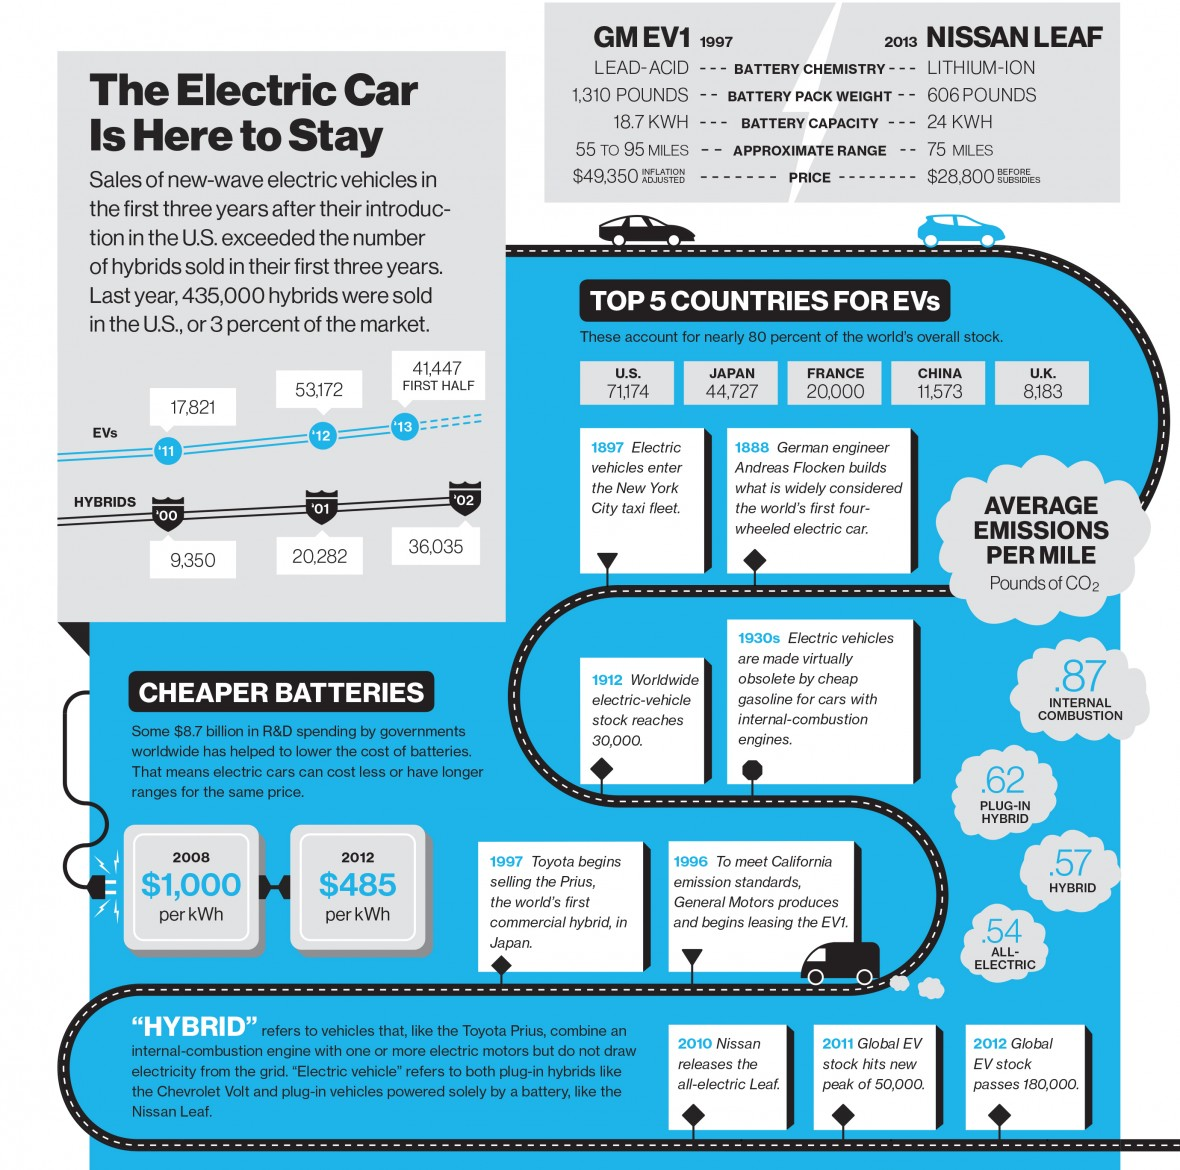 The Electric Car Is Here to Stay